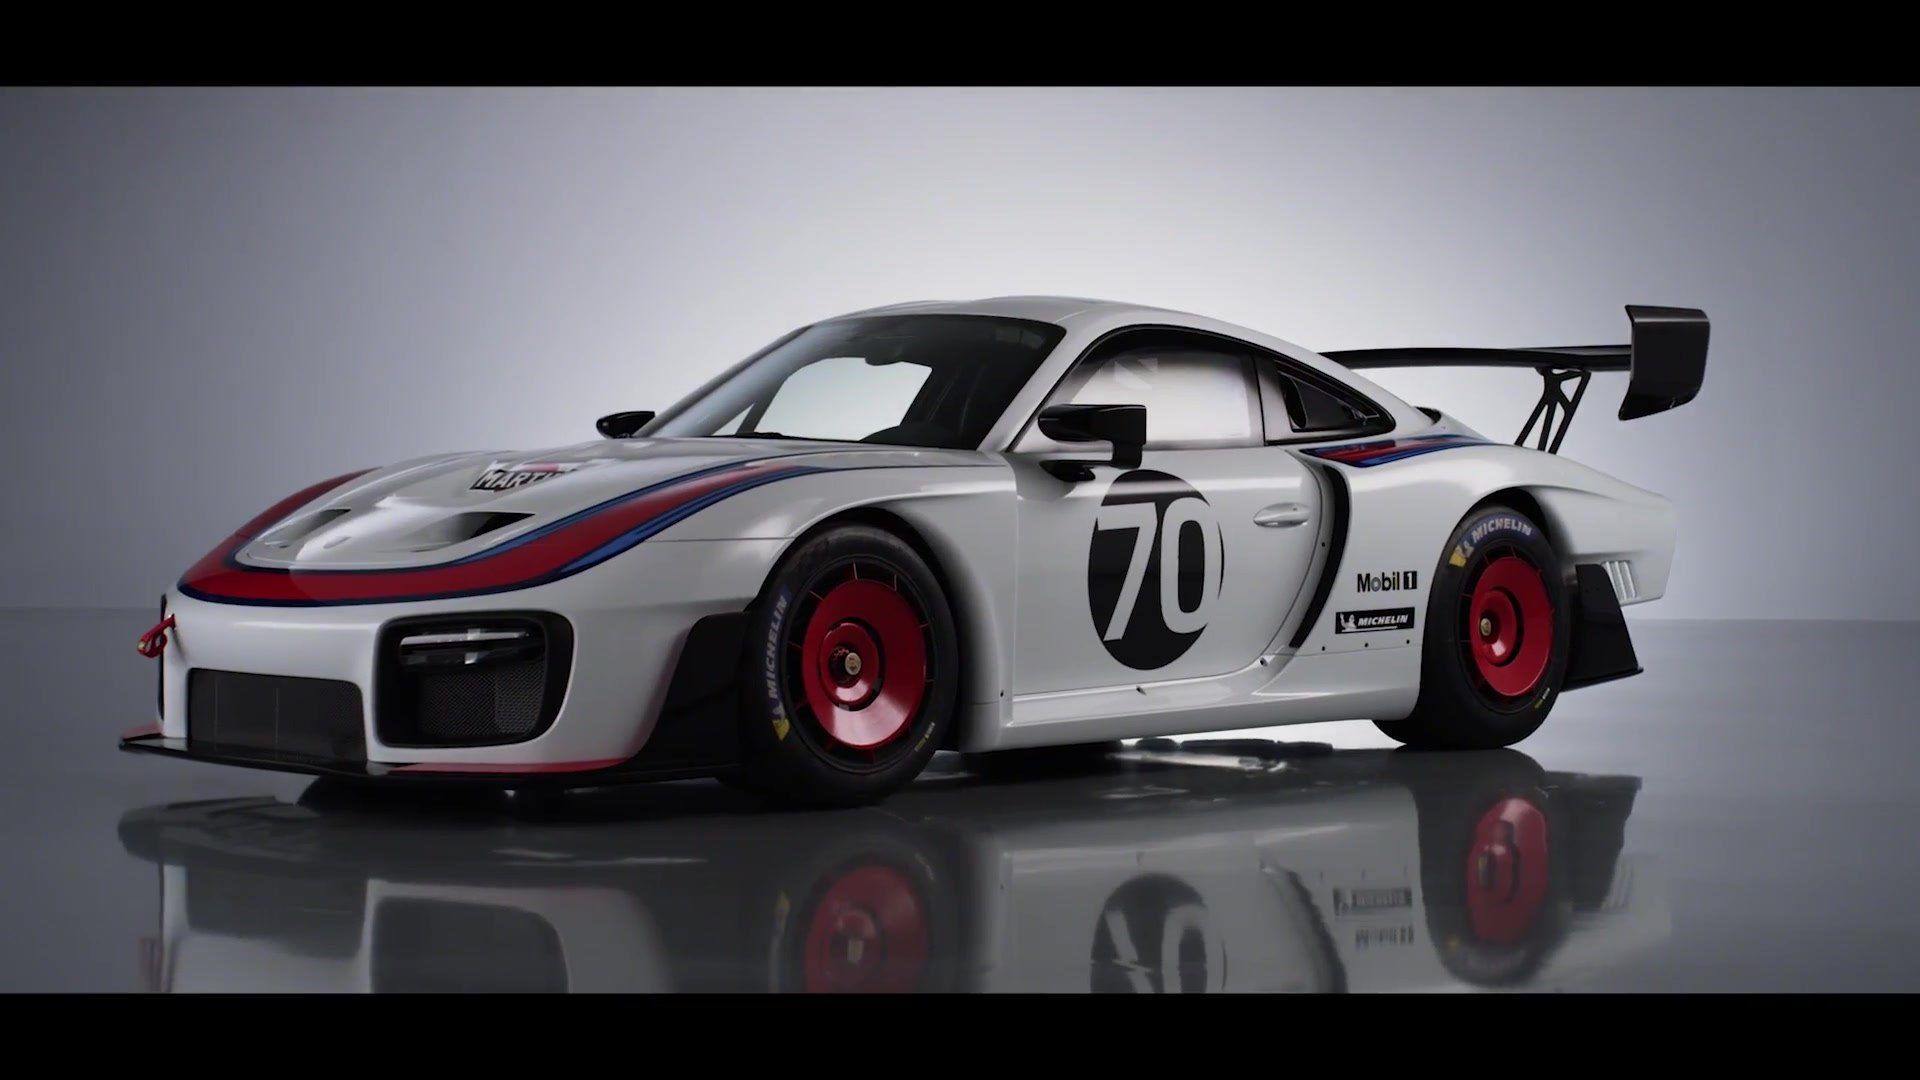 World premiere Exclusive new edition of the Porsche 935